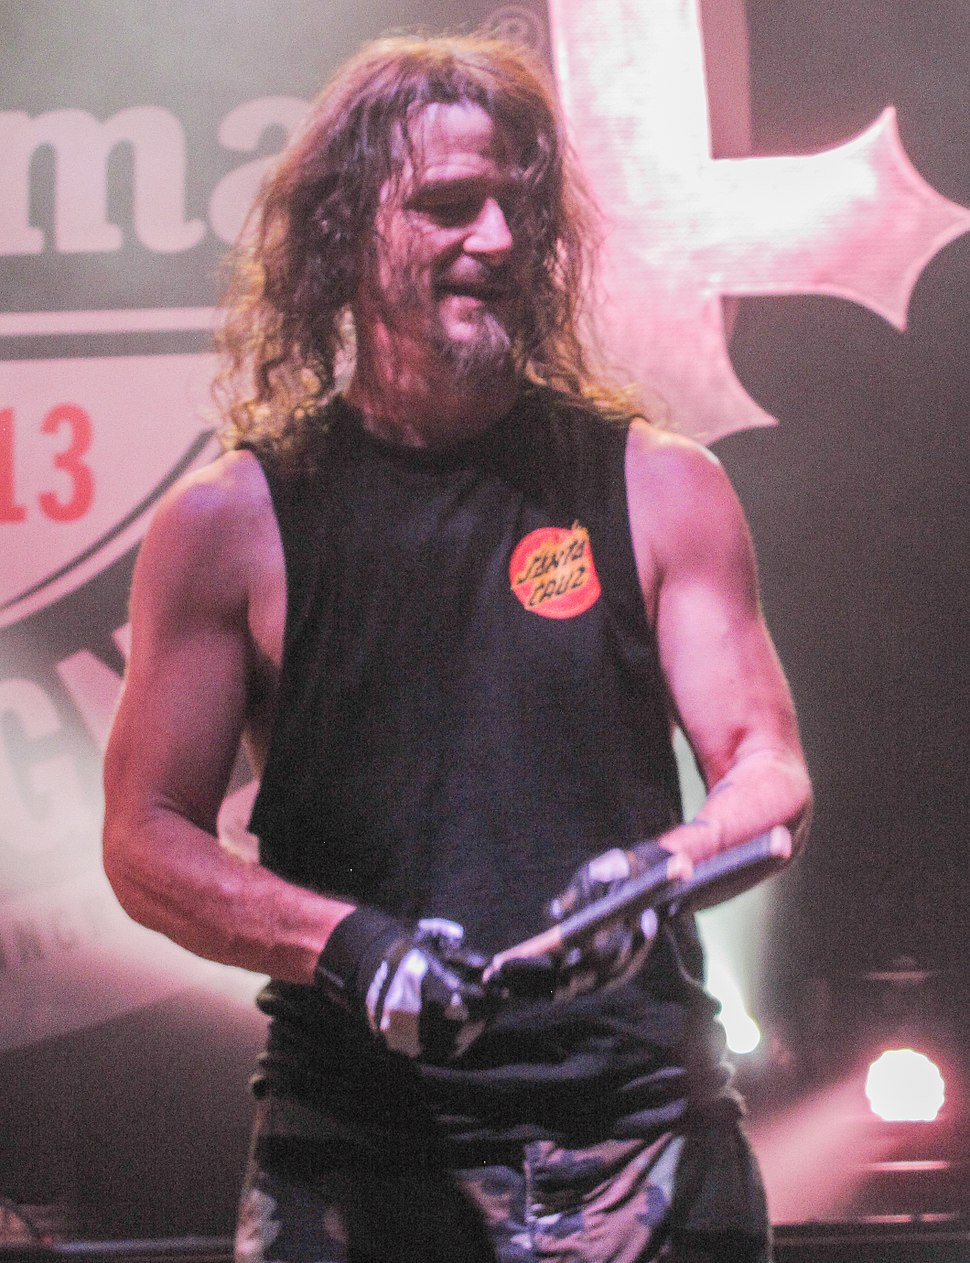 Paul Bostaph with Slayer in 2013 (cropped)